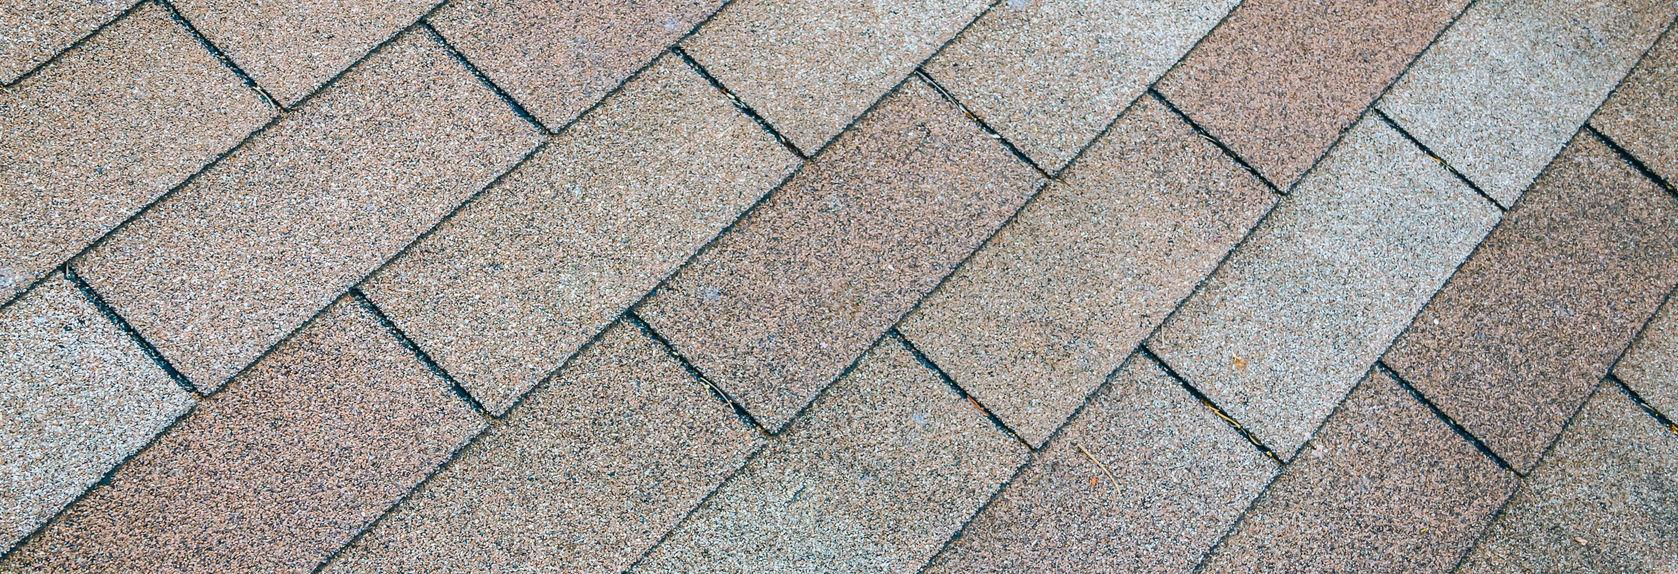 Tear Off and Repairs, no job too big or small at ASG Roofing & Remodeling